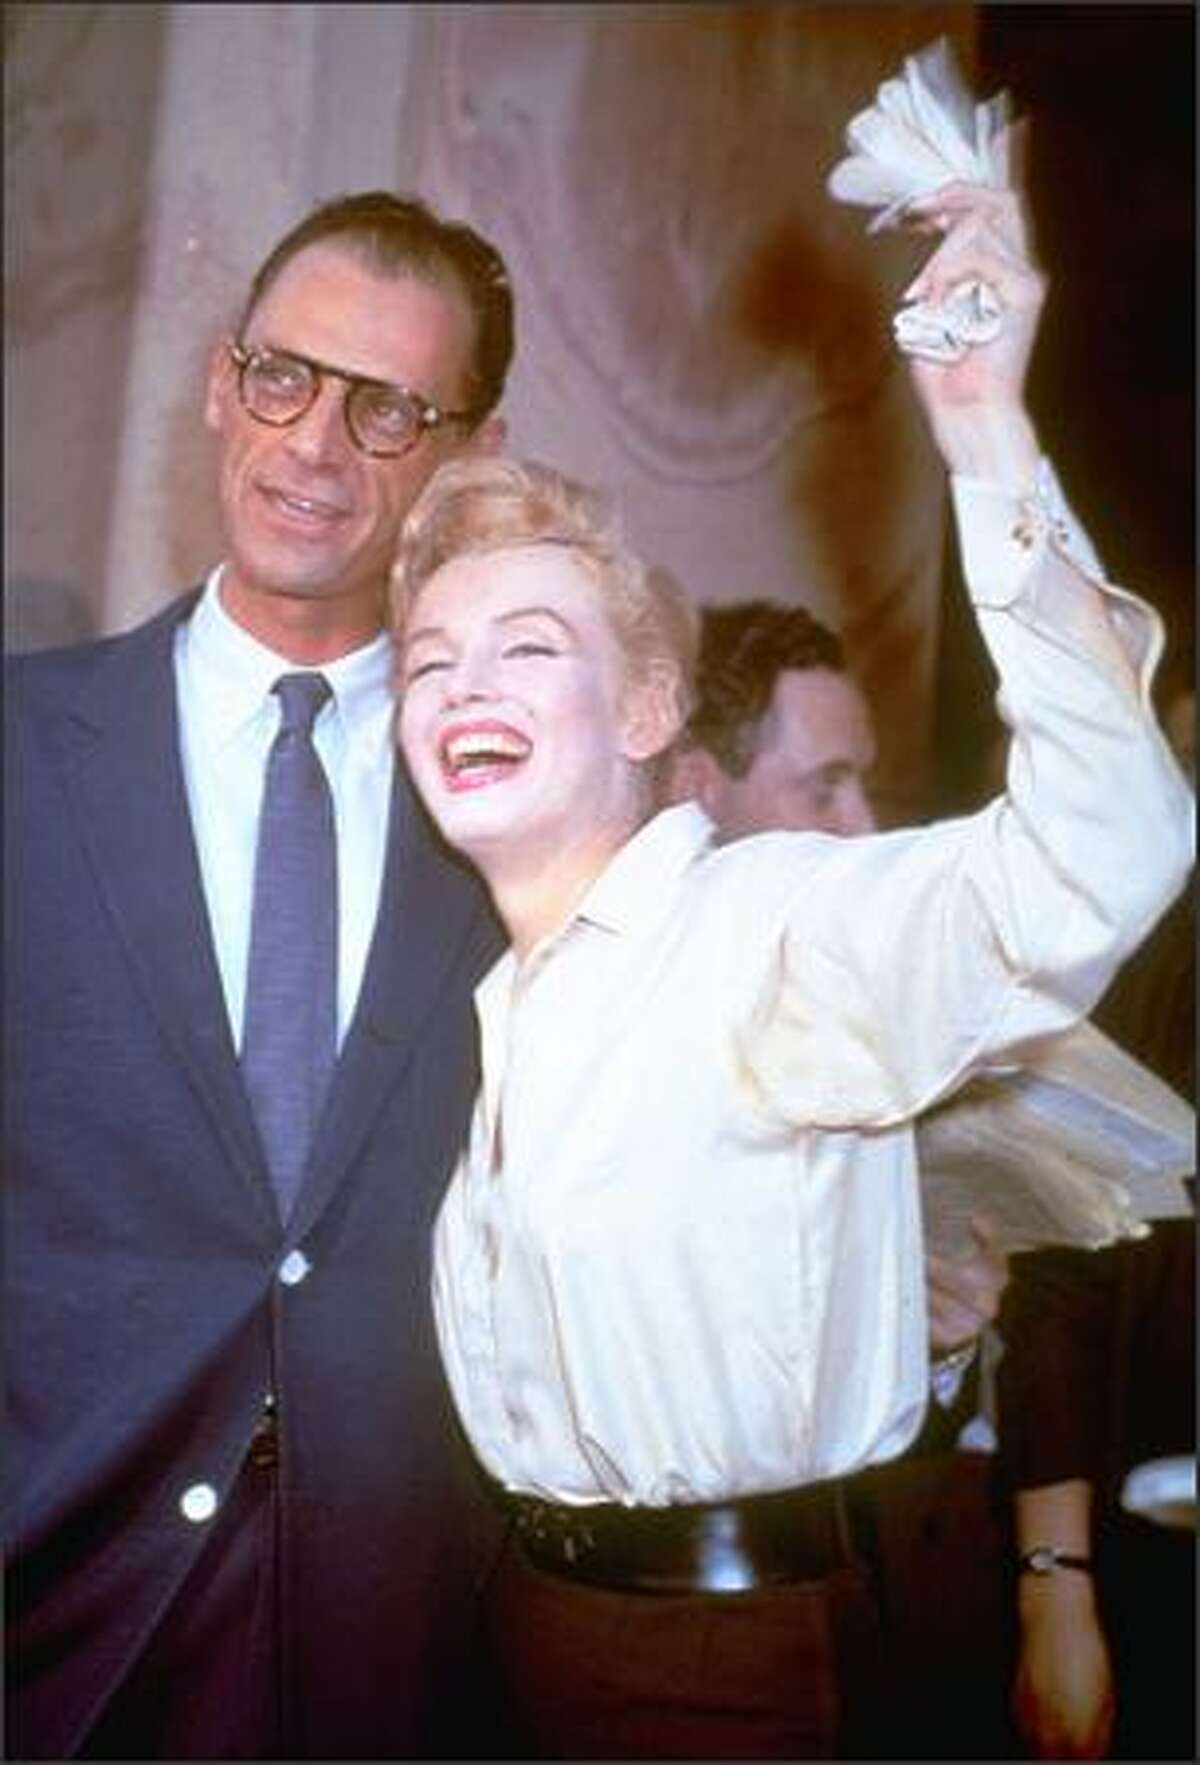 """When Marilyn Monroe and playwright Arthur Miller wed in 1956, the FBI was watching, according to FBI files obtained by The Associated Press. The FBI listed Miller as a Communist and Monroe as a """"drifter"""" into the Communist orbit. That kind of ill-informed, heavy-handed surveillance couldn't happen today, right?"""